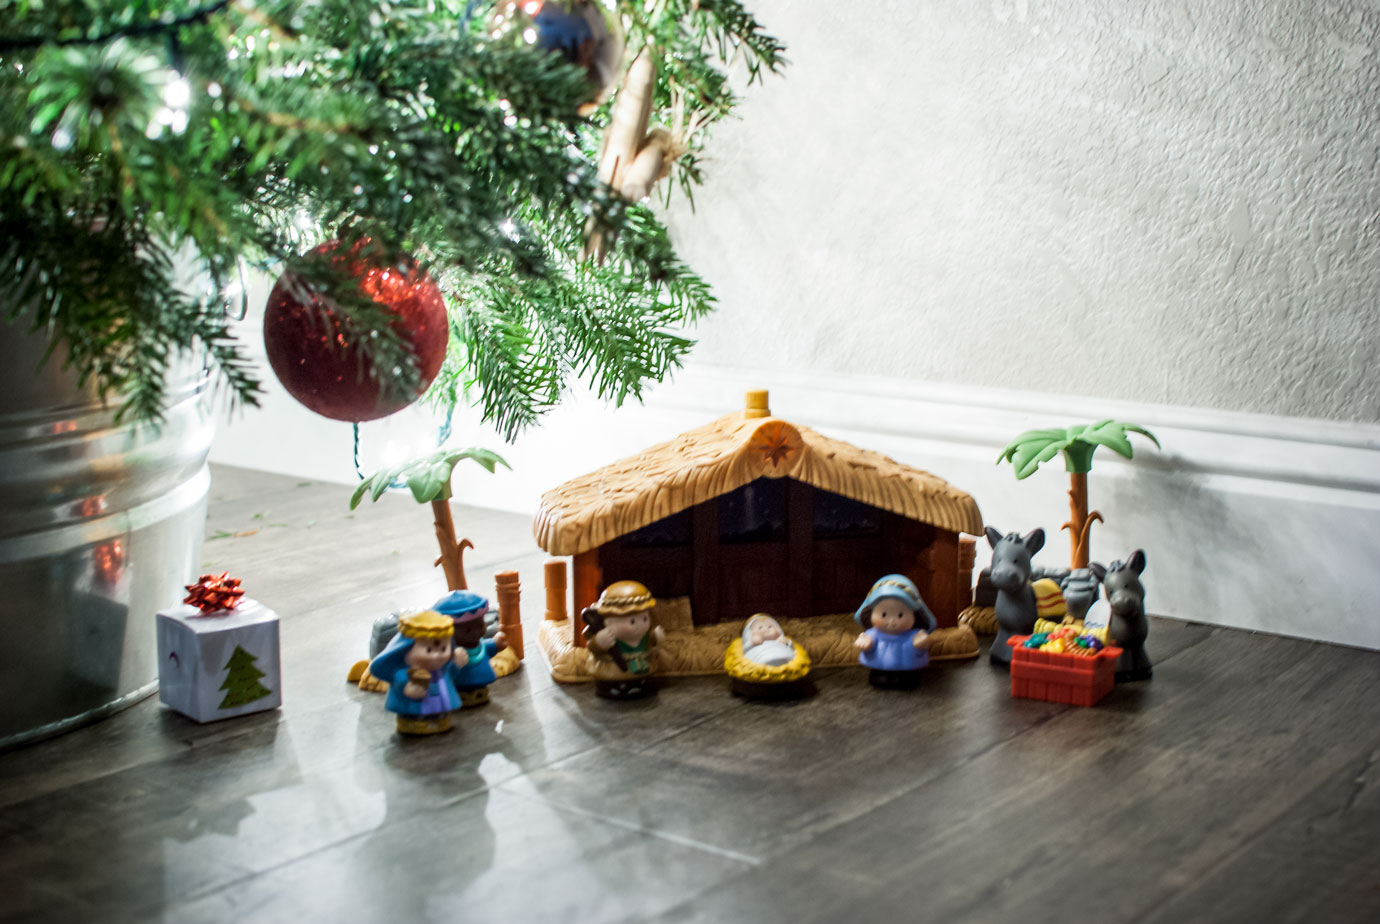 Fisher Price Nativity Scene Under a Christmas Tree